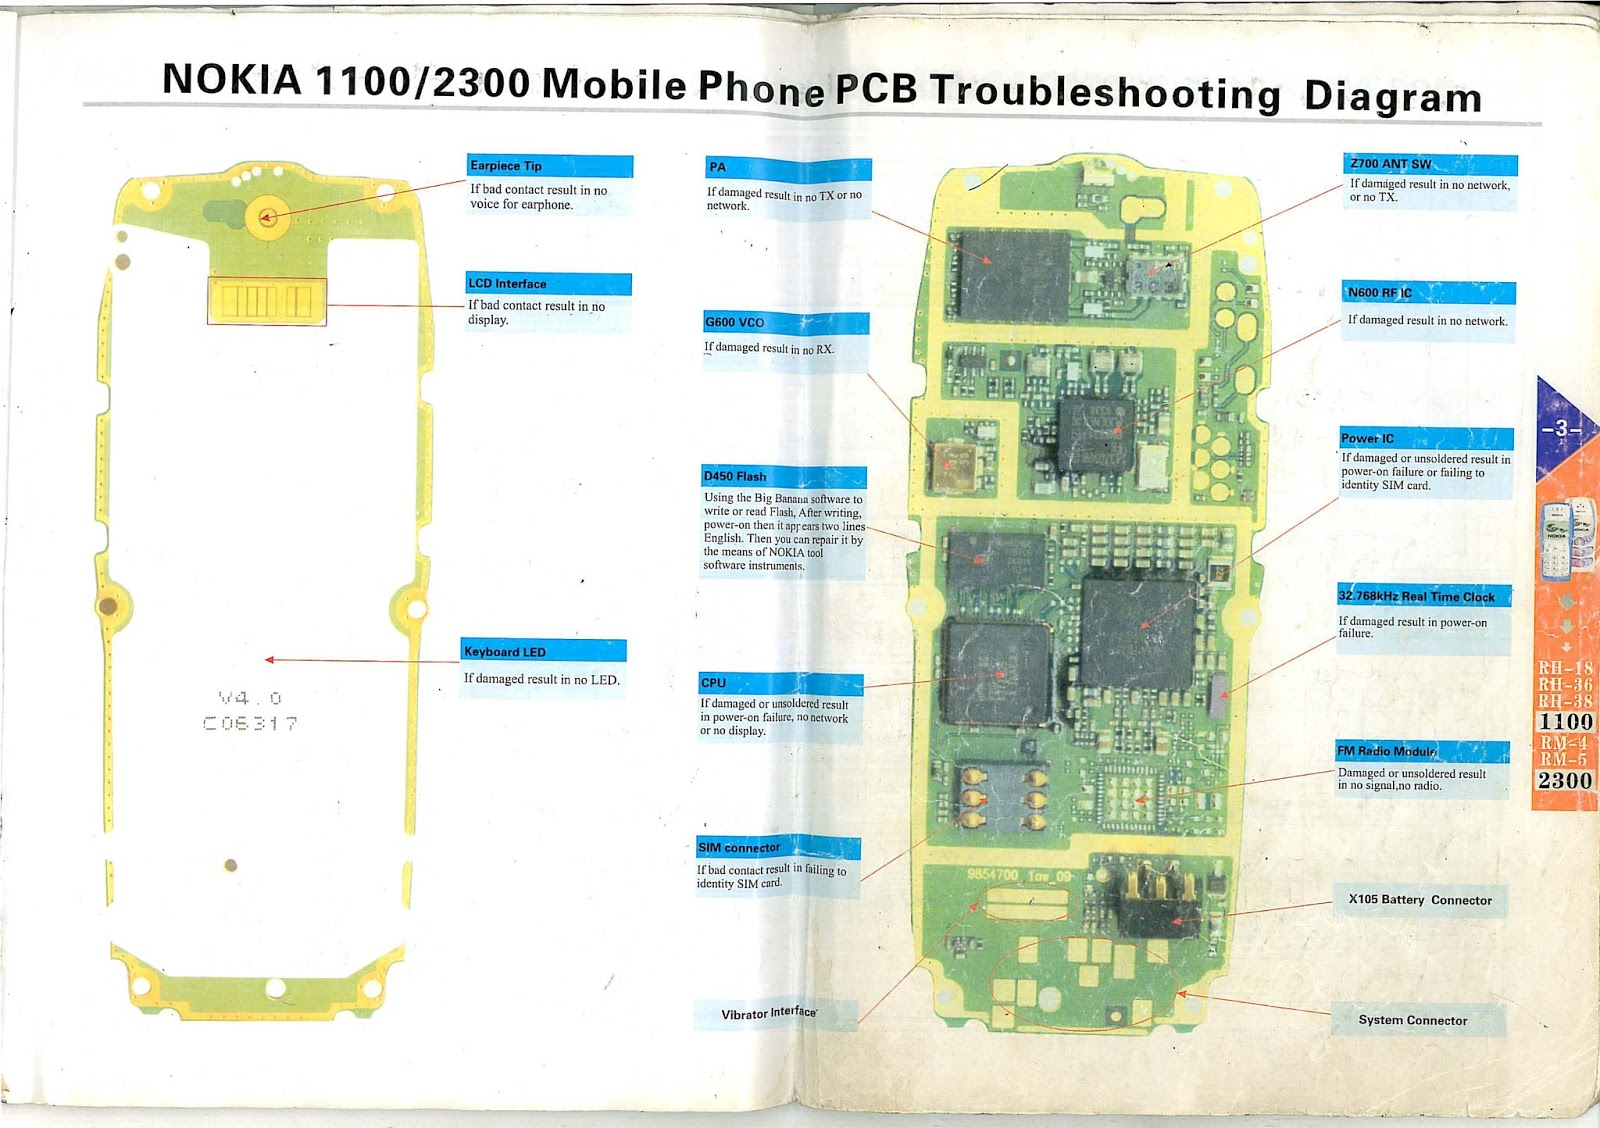 troubleshort Nokia Schematic on diver mode, ear spkrsply, key features, tracfone phones, basic phones, girl holding, speaker ways, mobile phone motherboerd,